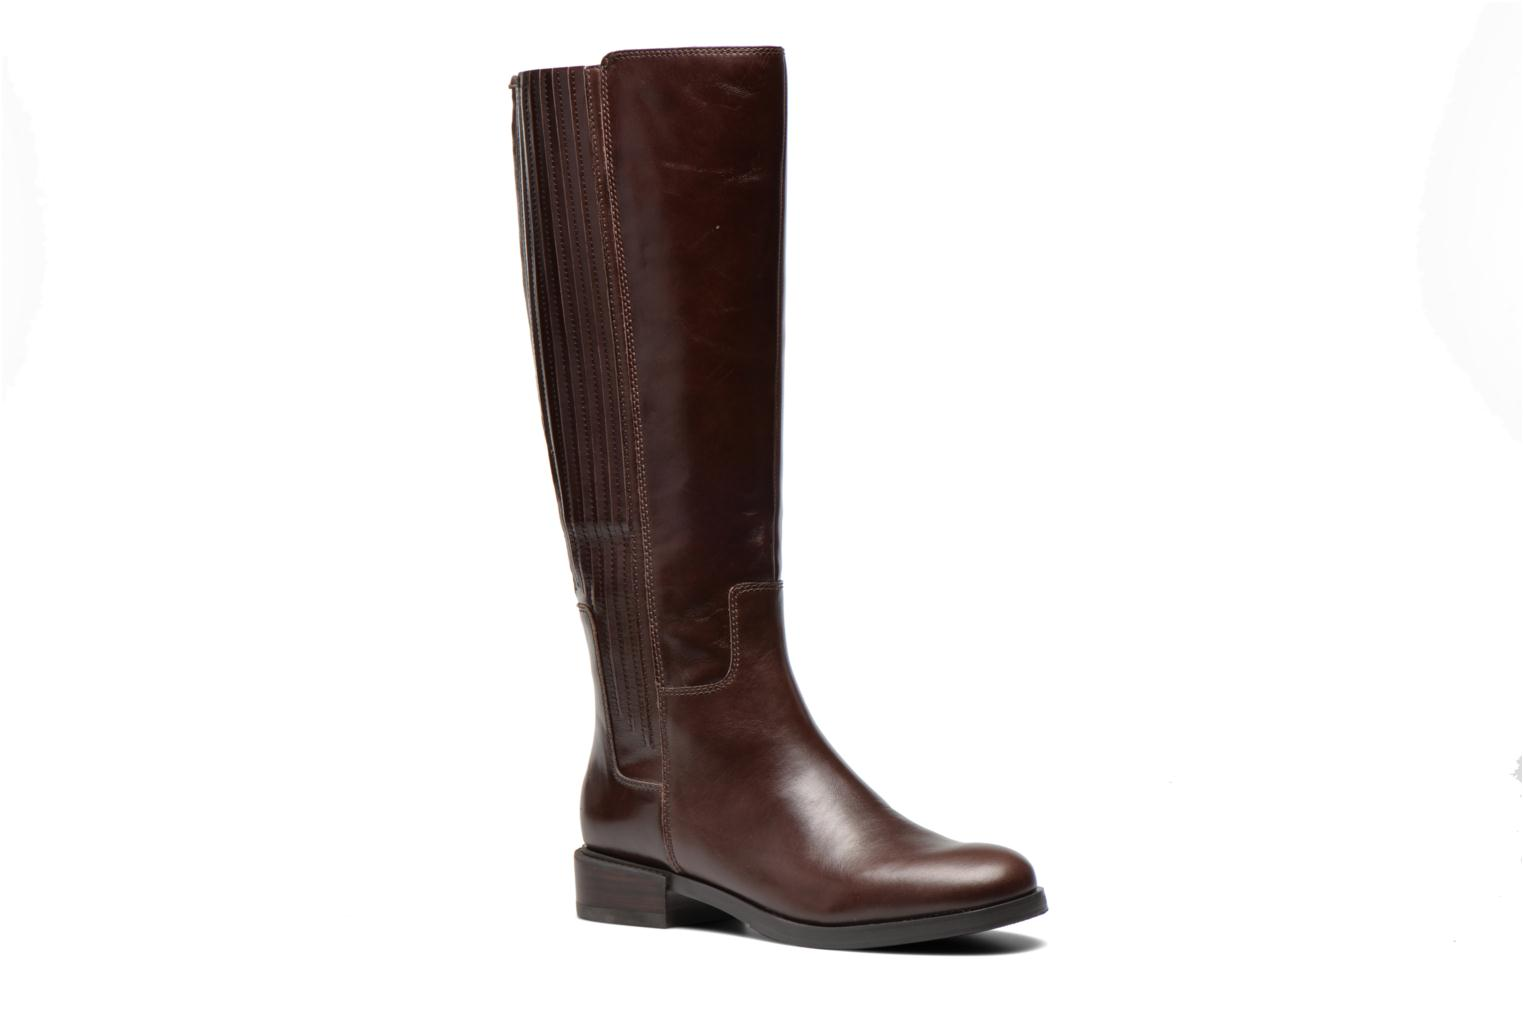 Clarks Marquette Silk Boots & Wellies Color: Brown